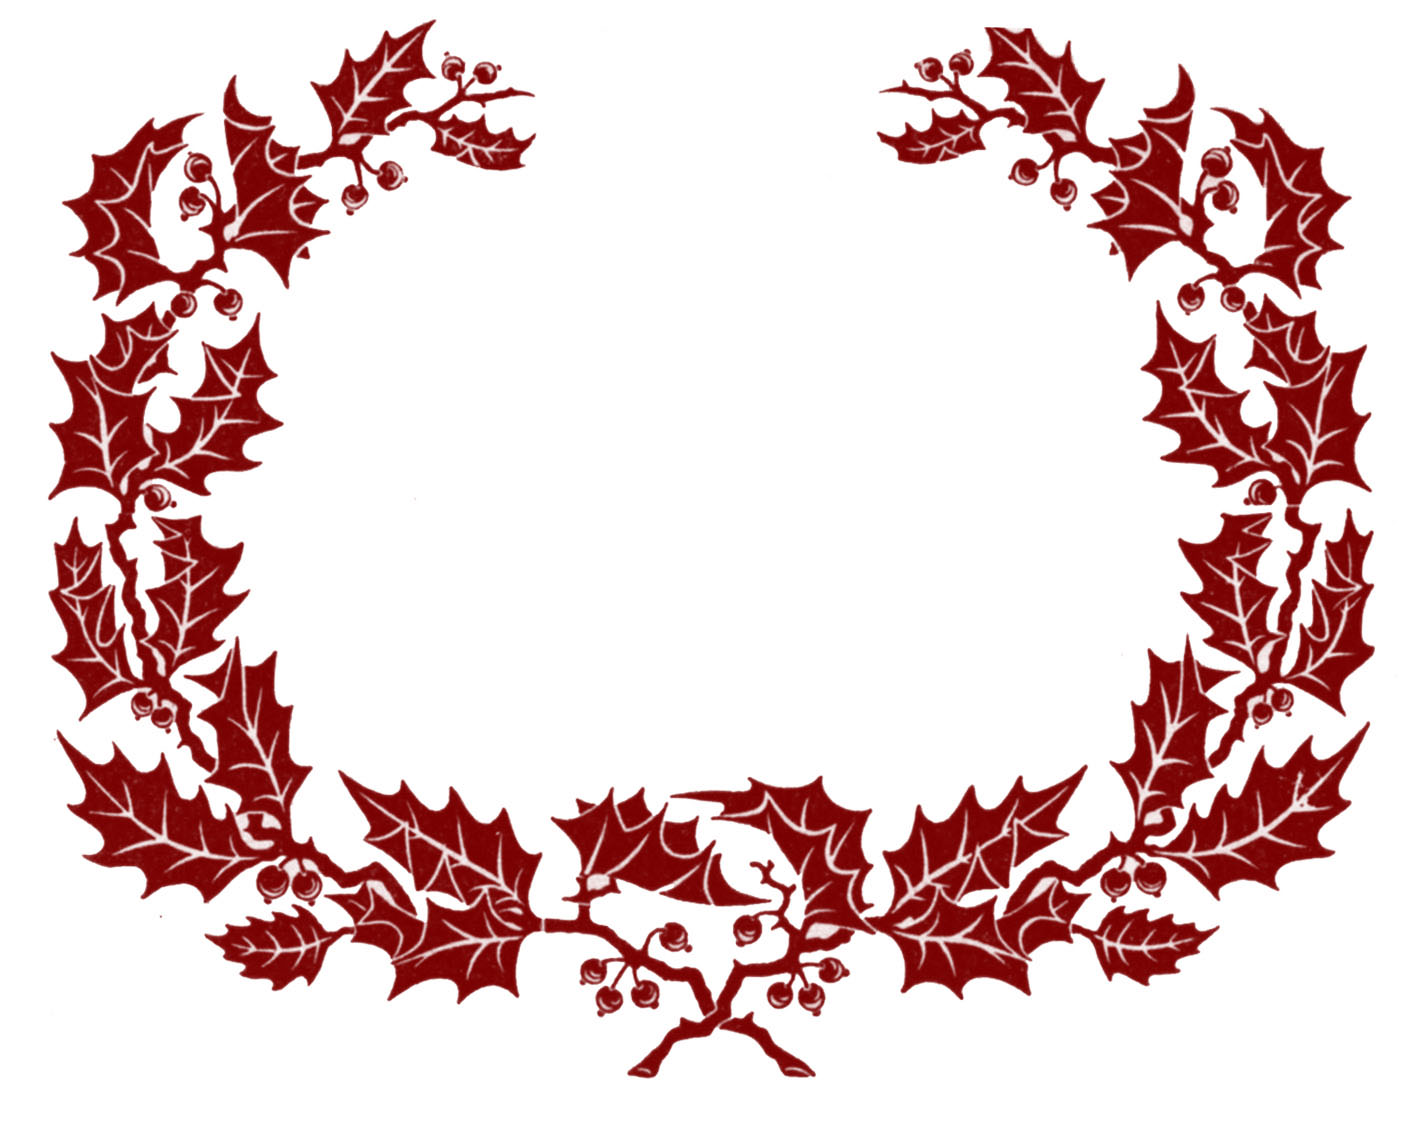 Vintage clip art holly wreath graphic frame